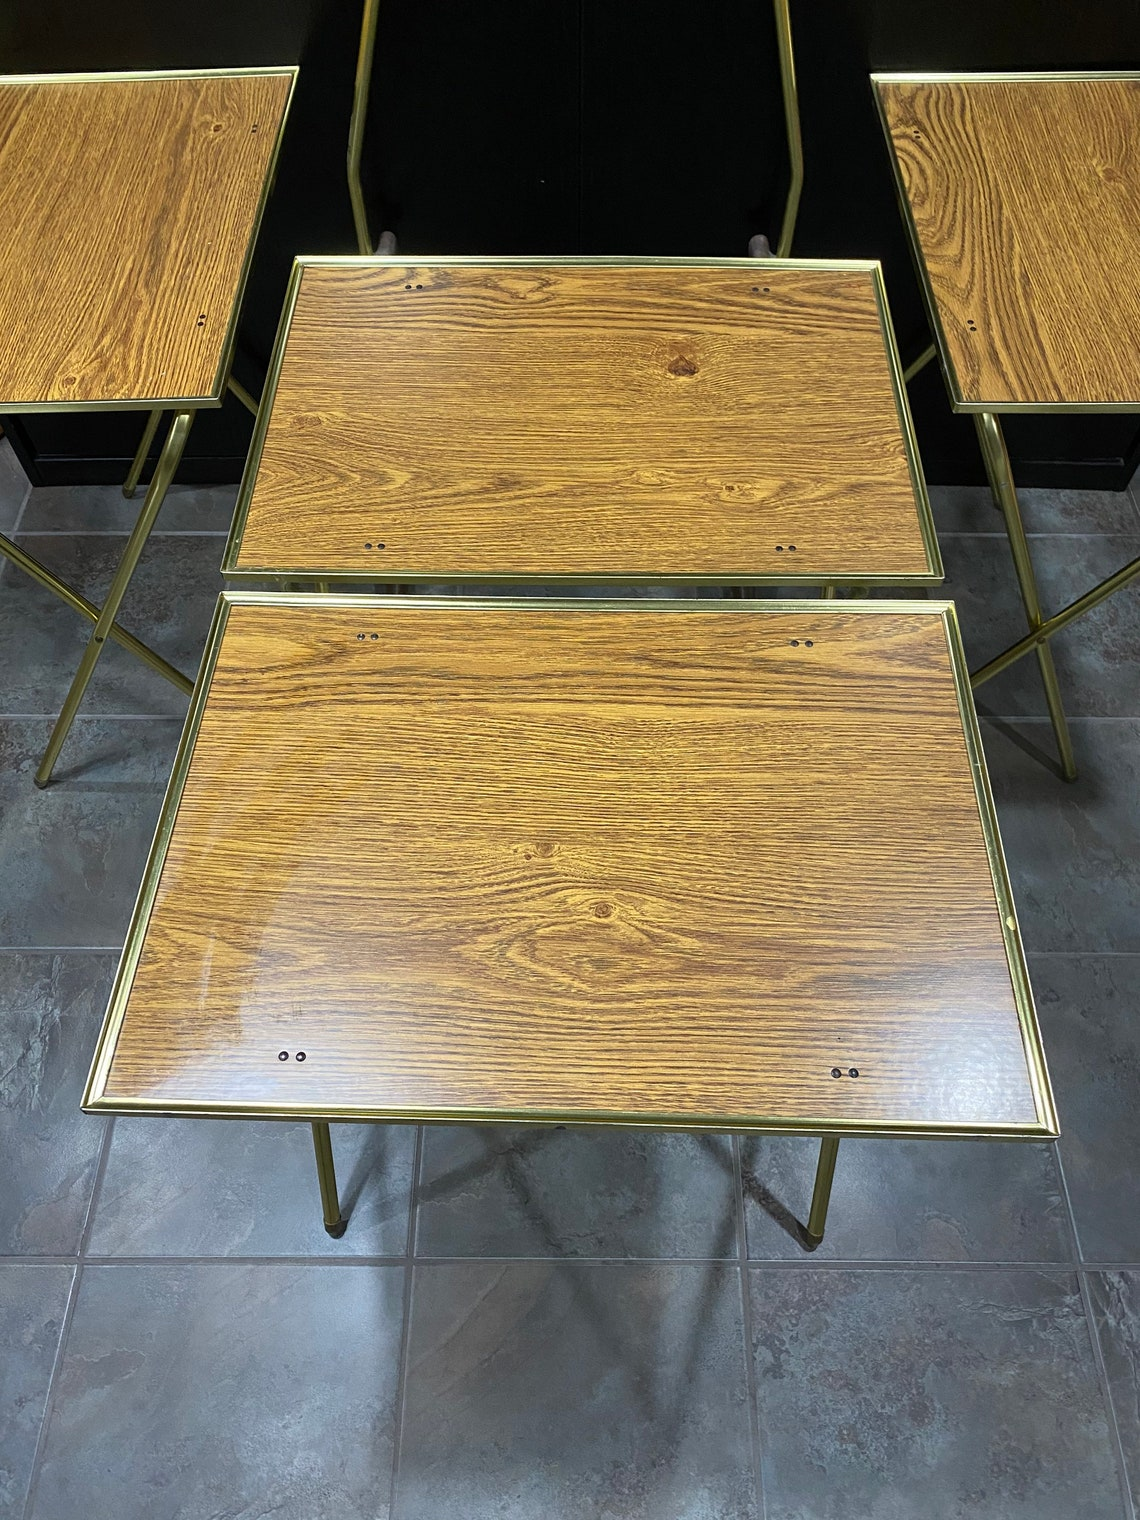 Set of 4 Vintage Folding Metal TV Snack Tray Tables On Stand Wood Grain Decor